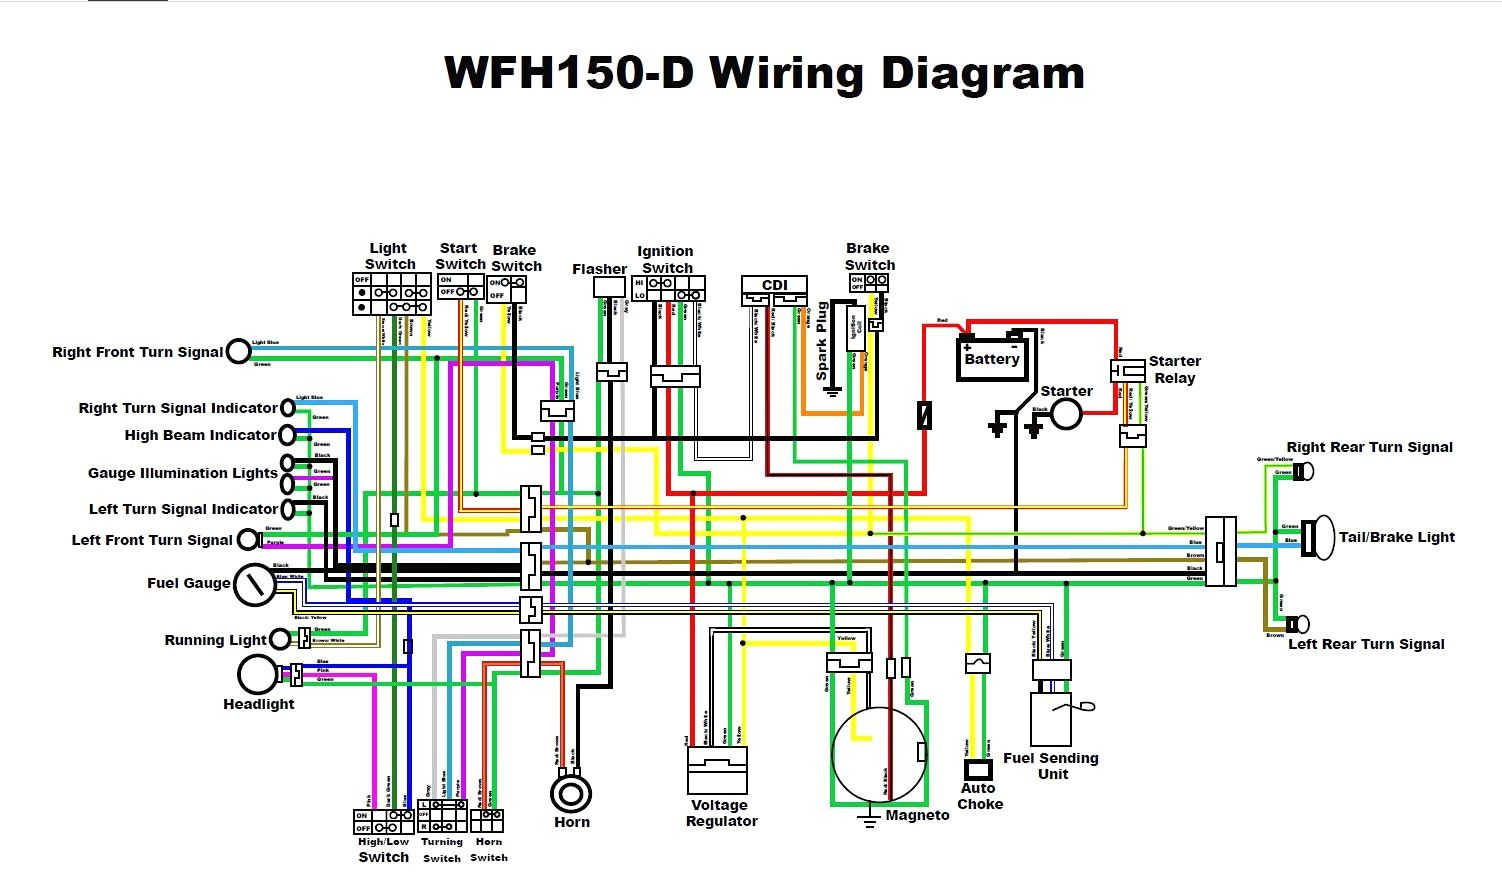 medium resolution of wiring diagram for gy6 150cc scooter wiring diagram home 150cc chinese scooter wiring diagram 150cc scooter wiring diagram